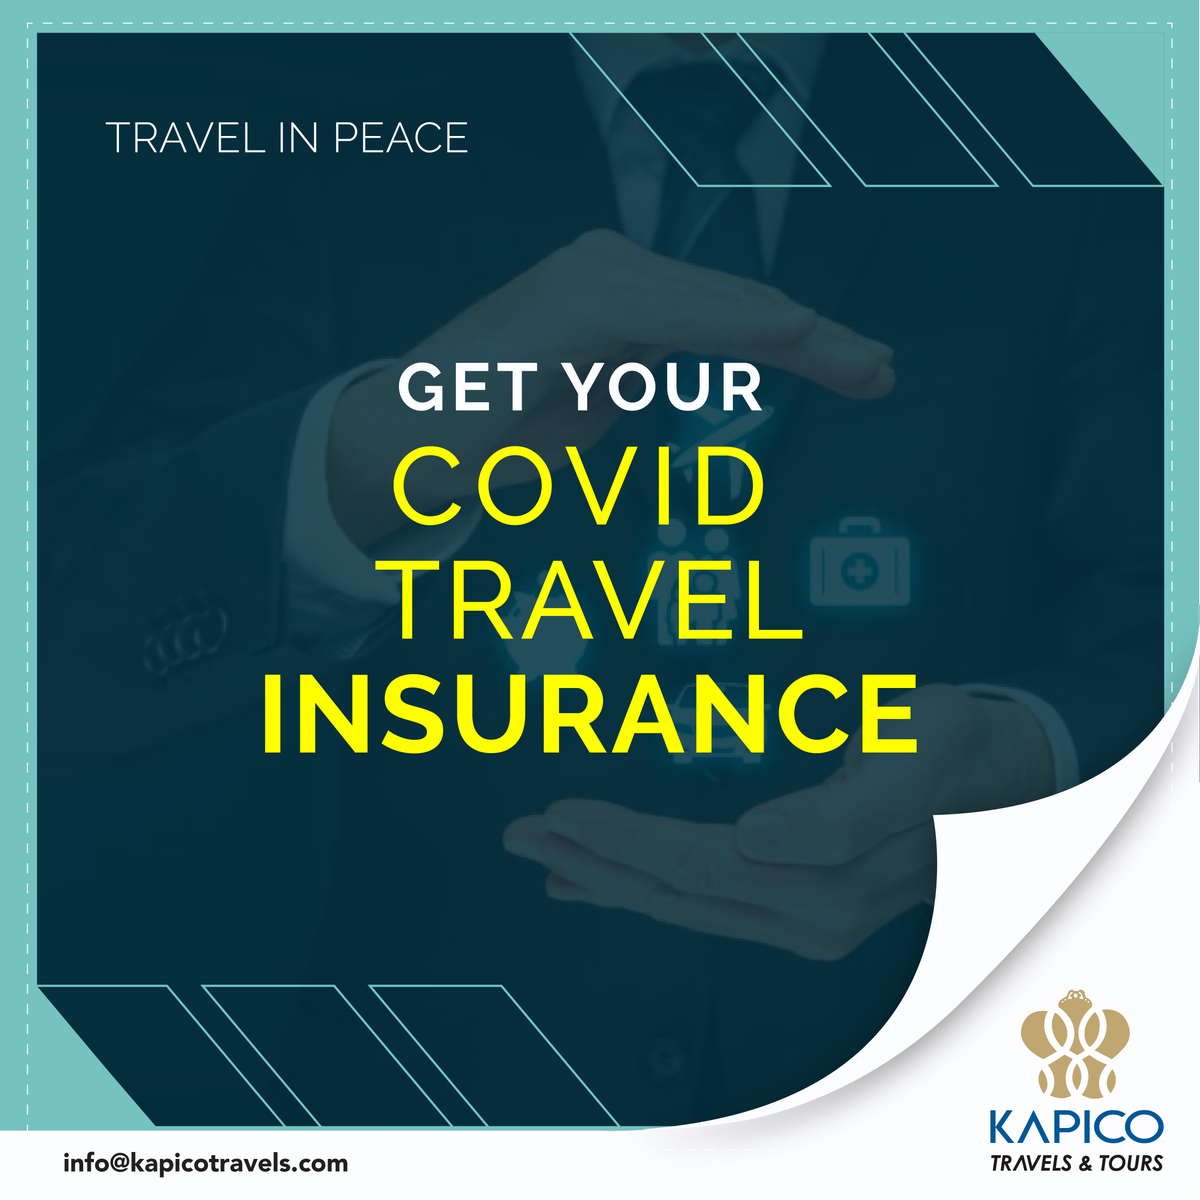 Looking for Travel insurance that covers #covid19? We are here to assist you.  Contact us at: Info@kapicotravels.com    هل تبحث عن تأمين سفر يغطي # covid19؟ نحن هنا لمساعدتكم. اتصل بنا على:  Info@kapicotravels.com  #kapico #kapicotravels #covid19travelinsurance #travelinsurance https://t.co/Y0DxYt6d2N